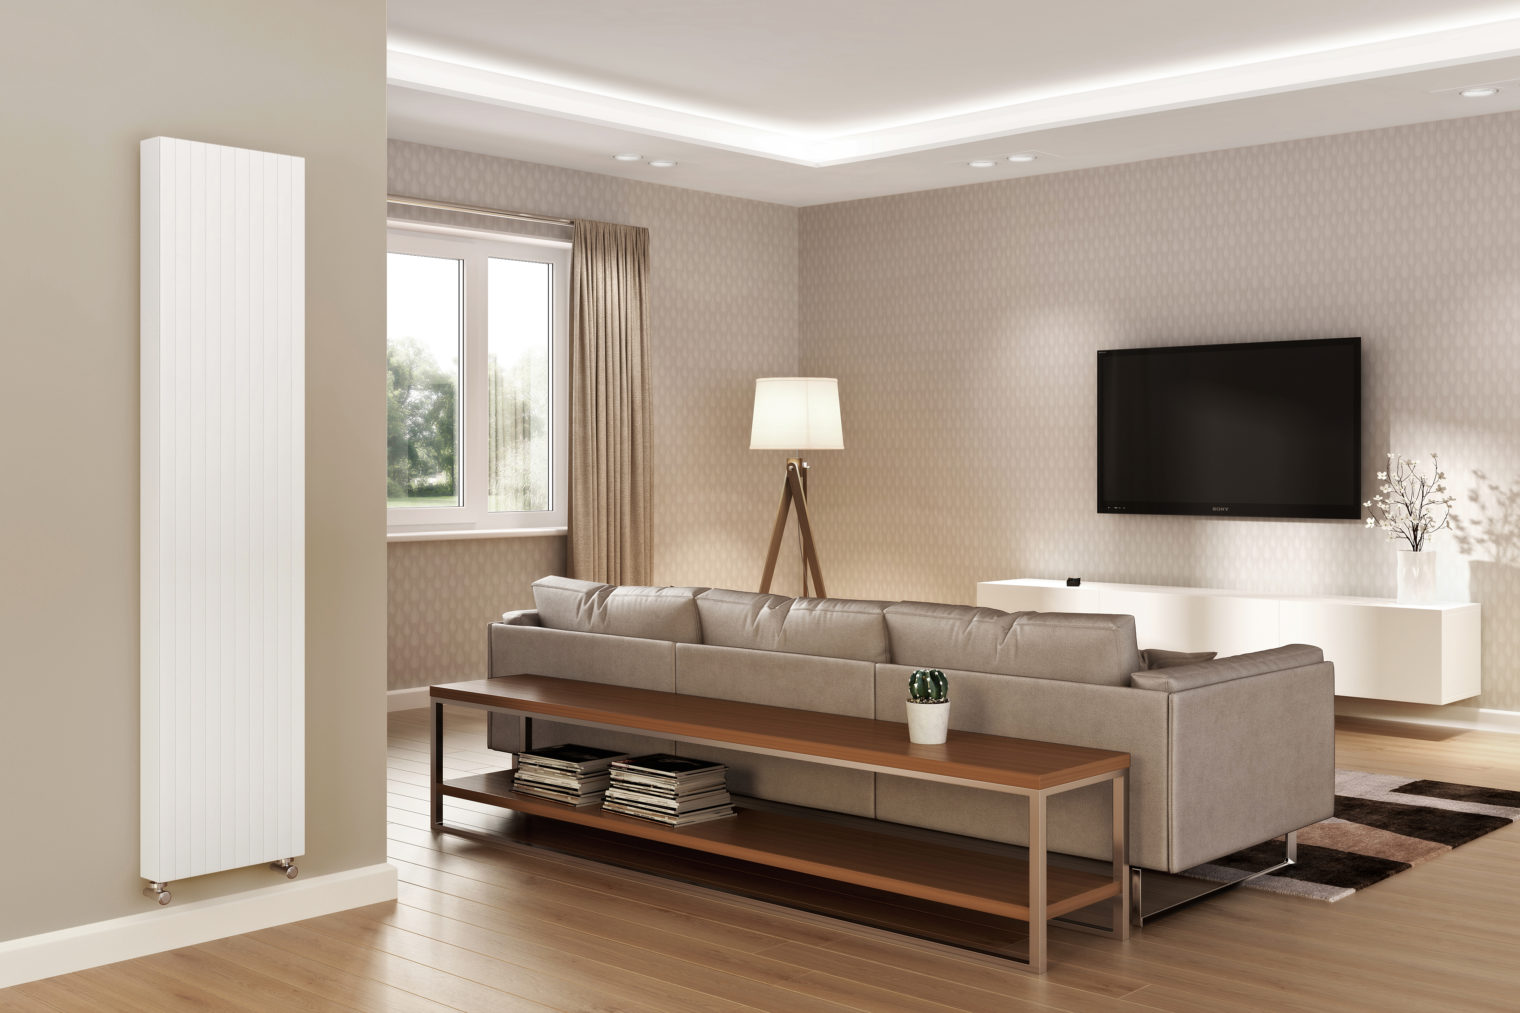 Softline Deco Vertical Radiators